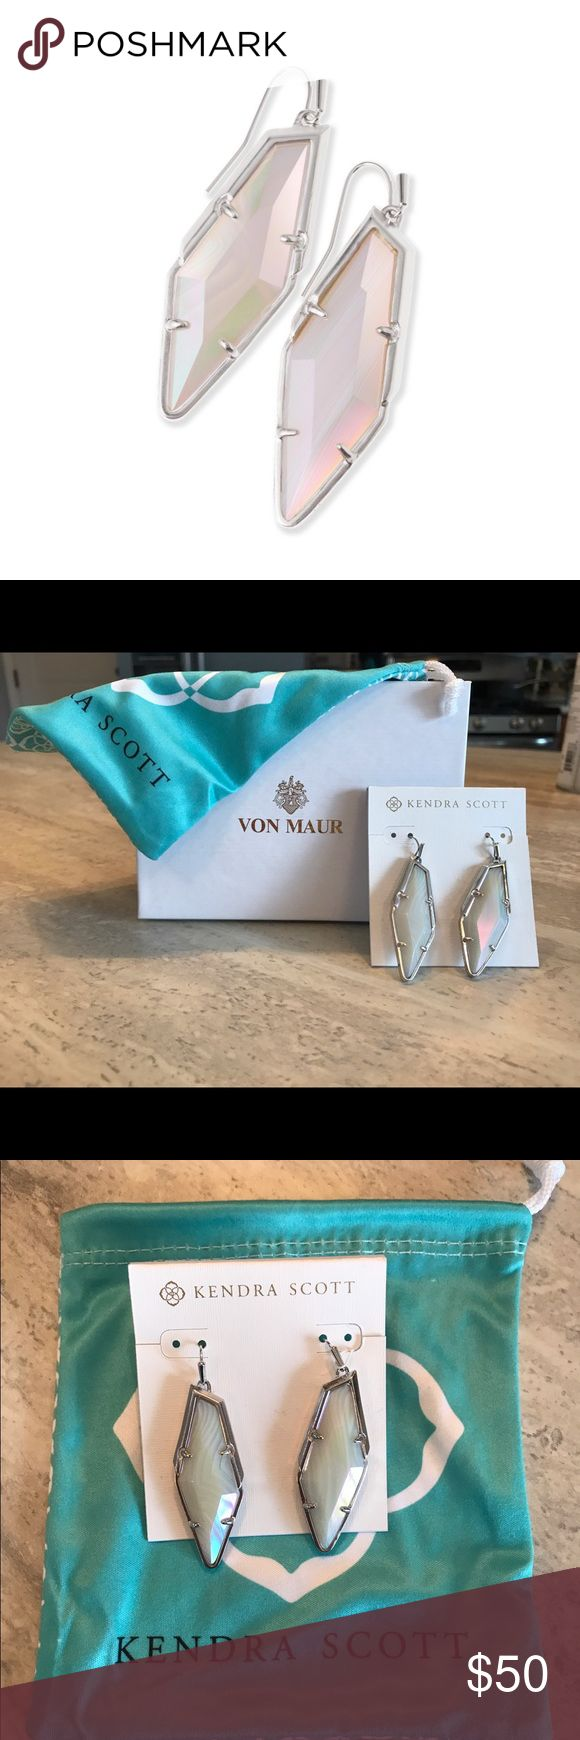 Authentic Kendra Scott Earrings Bexley Drop Earrings In Iridescent White Banded Agate. I purchased these stunning earrings at Von Maur and they have never been worn. Kendra Scott jewelry bag included. Jewelry Earrings